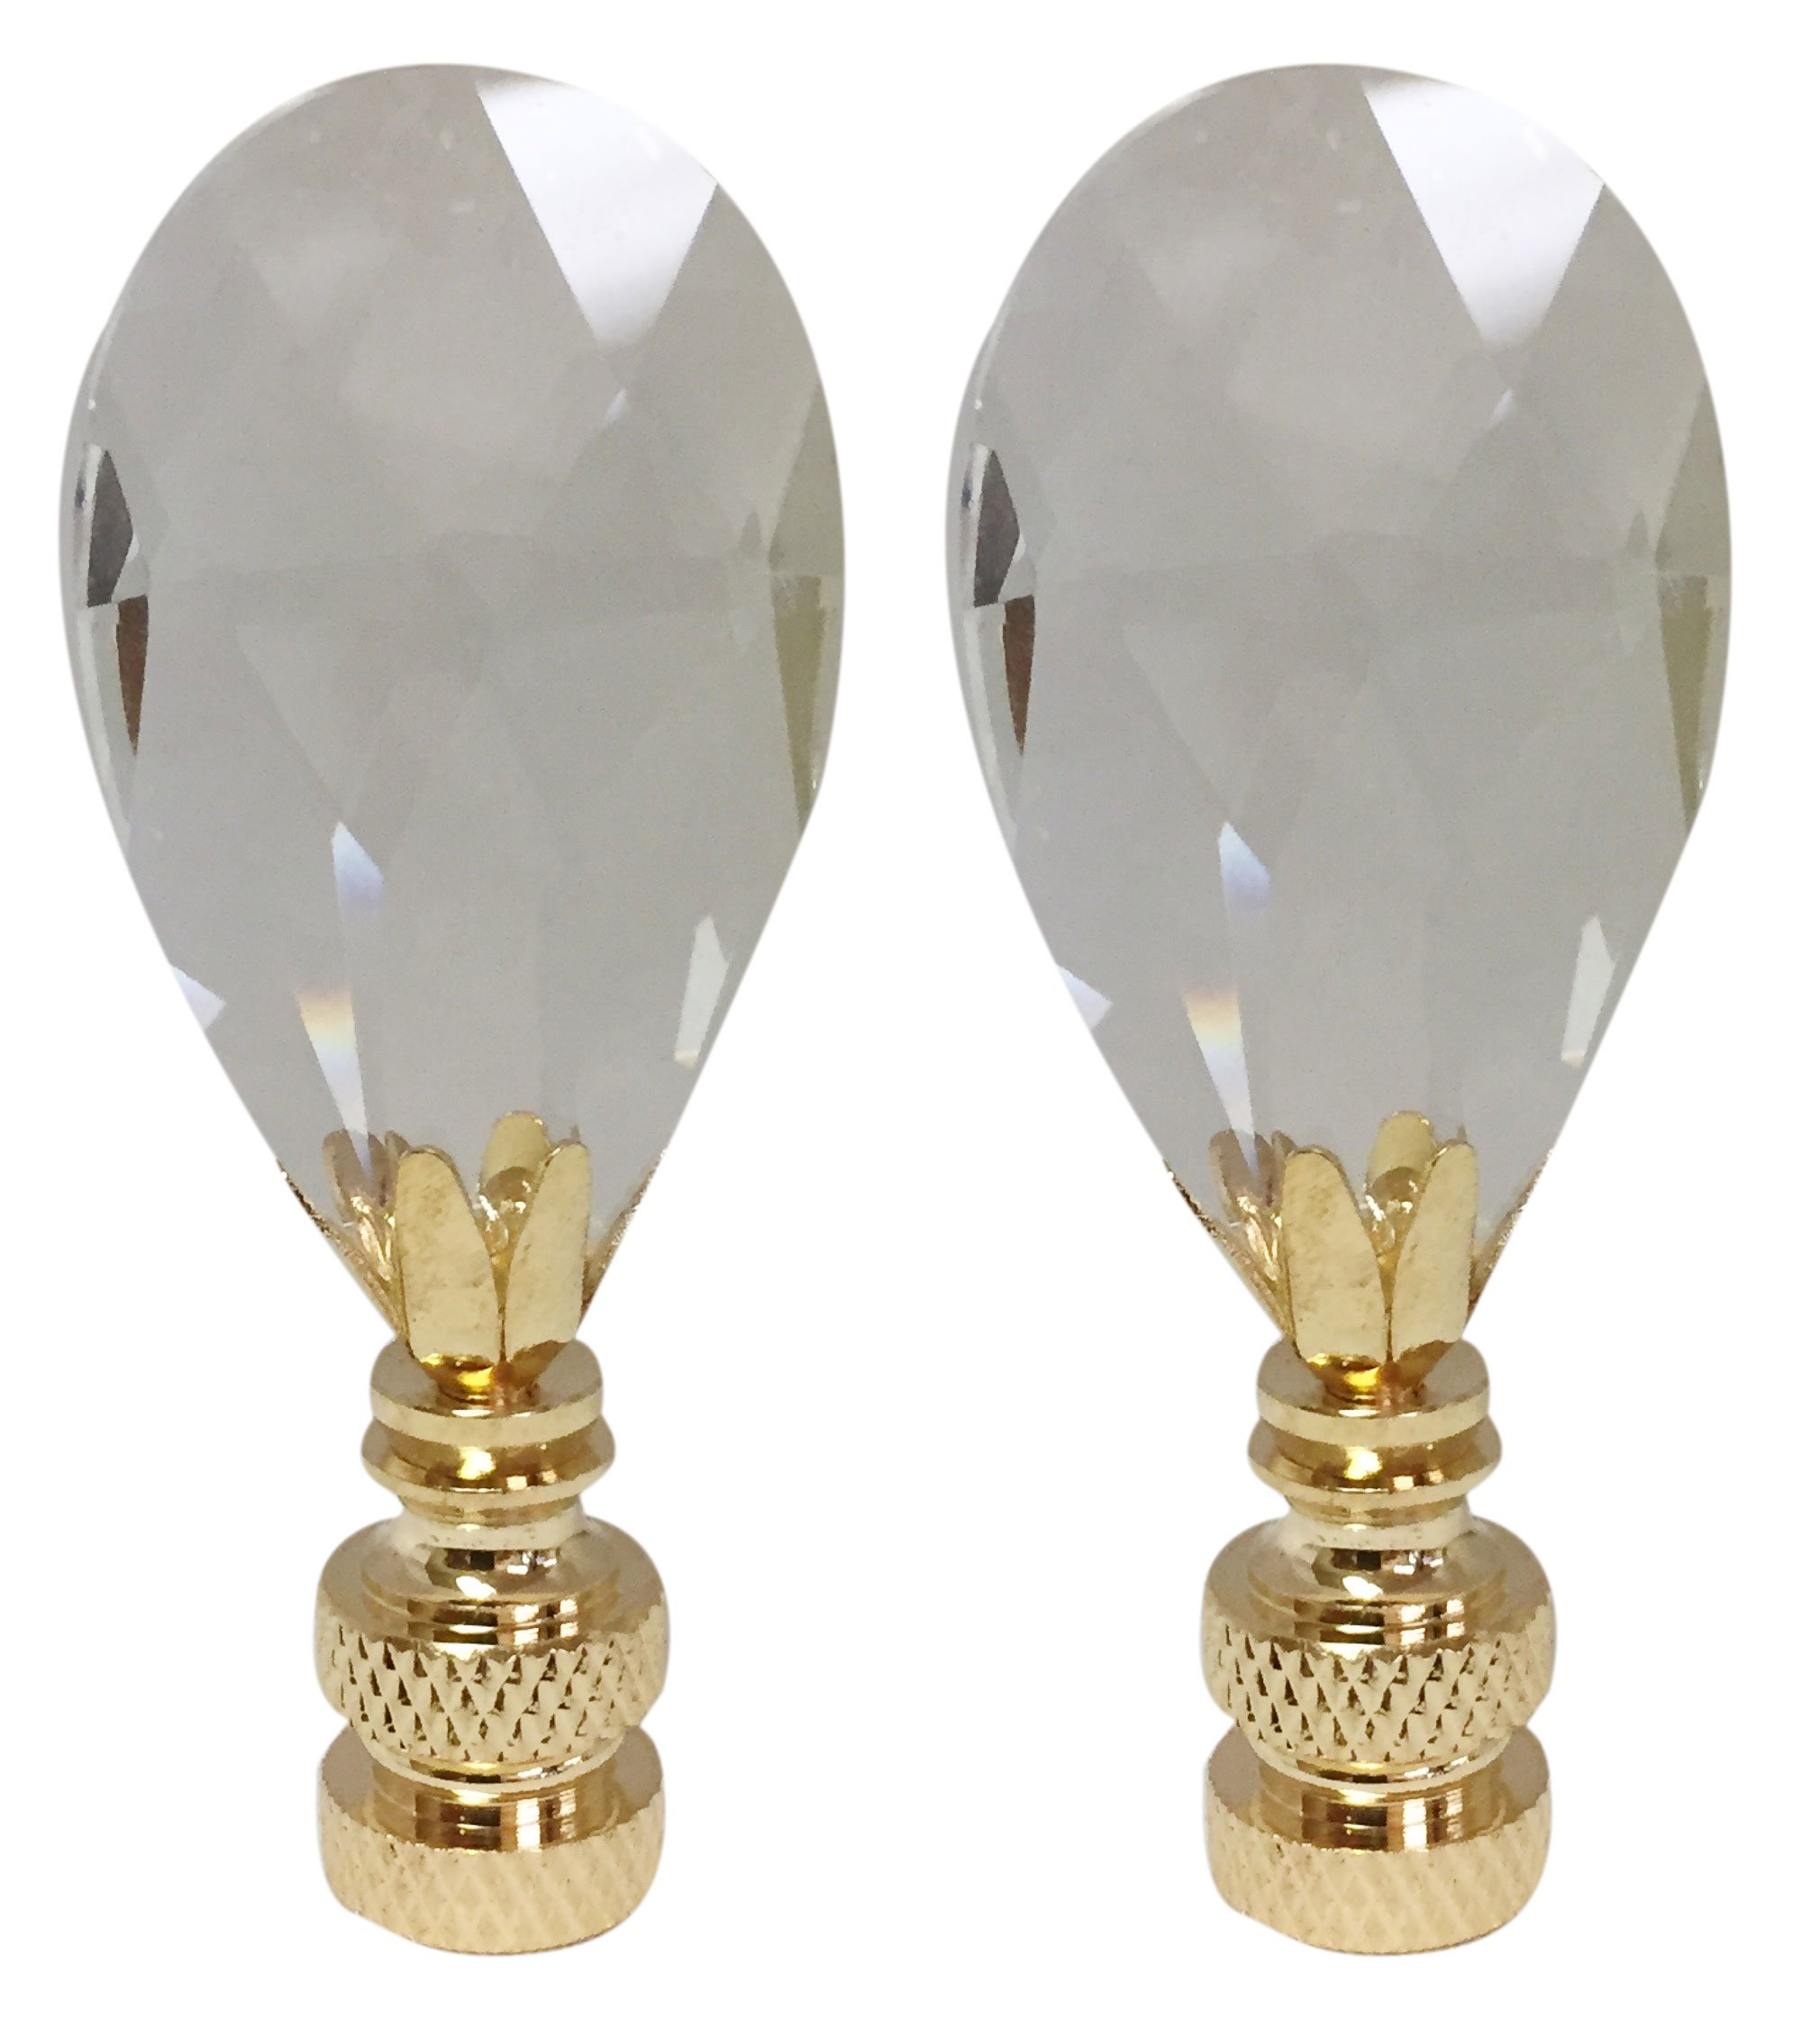 Royal Designs Radiant Teardrop Clear Crystal Lamp Finial for Lamp Shade- Polished Brass Base Set of 2